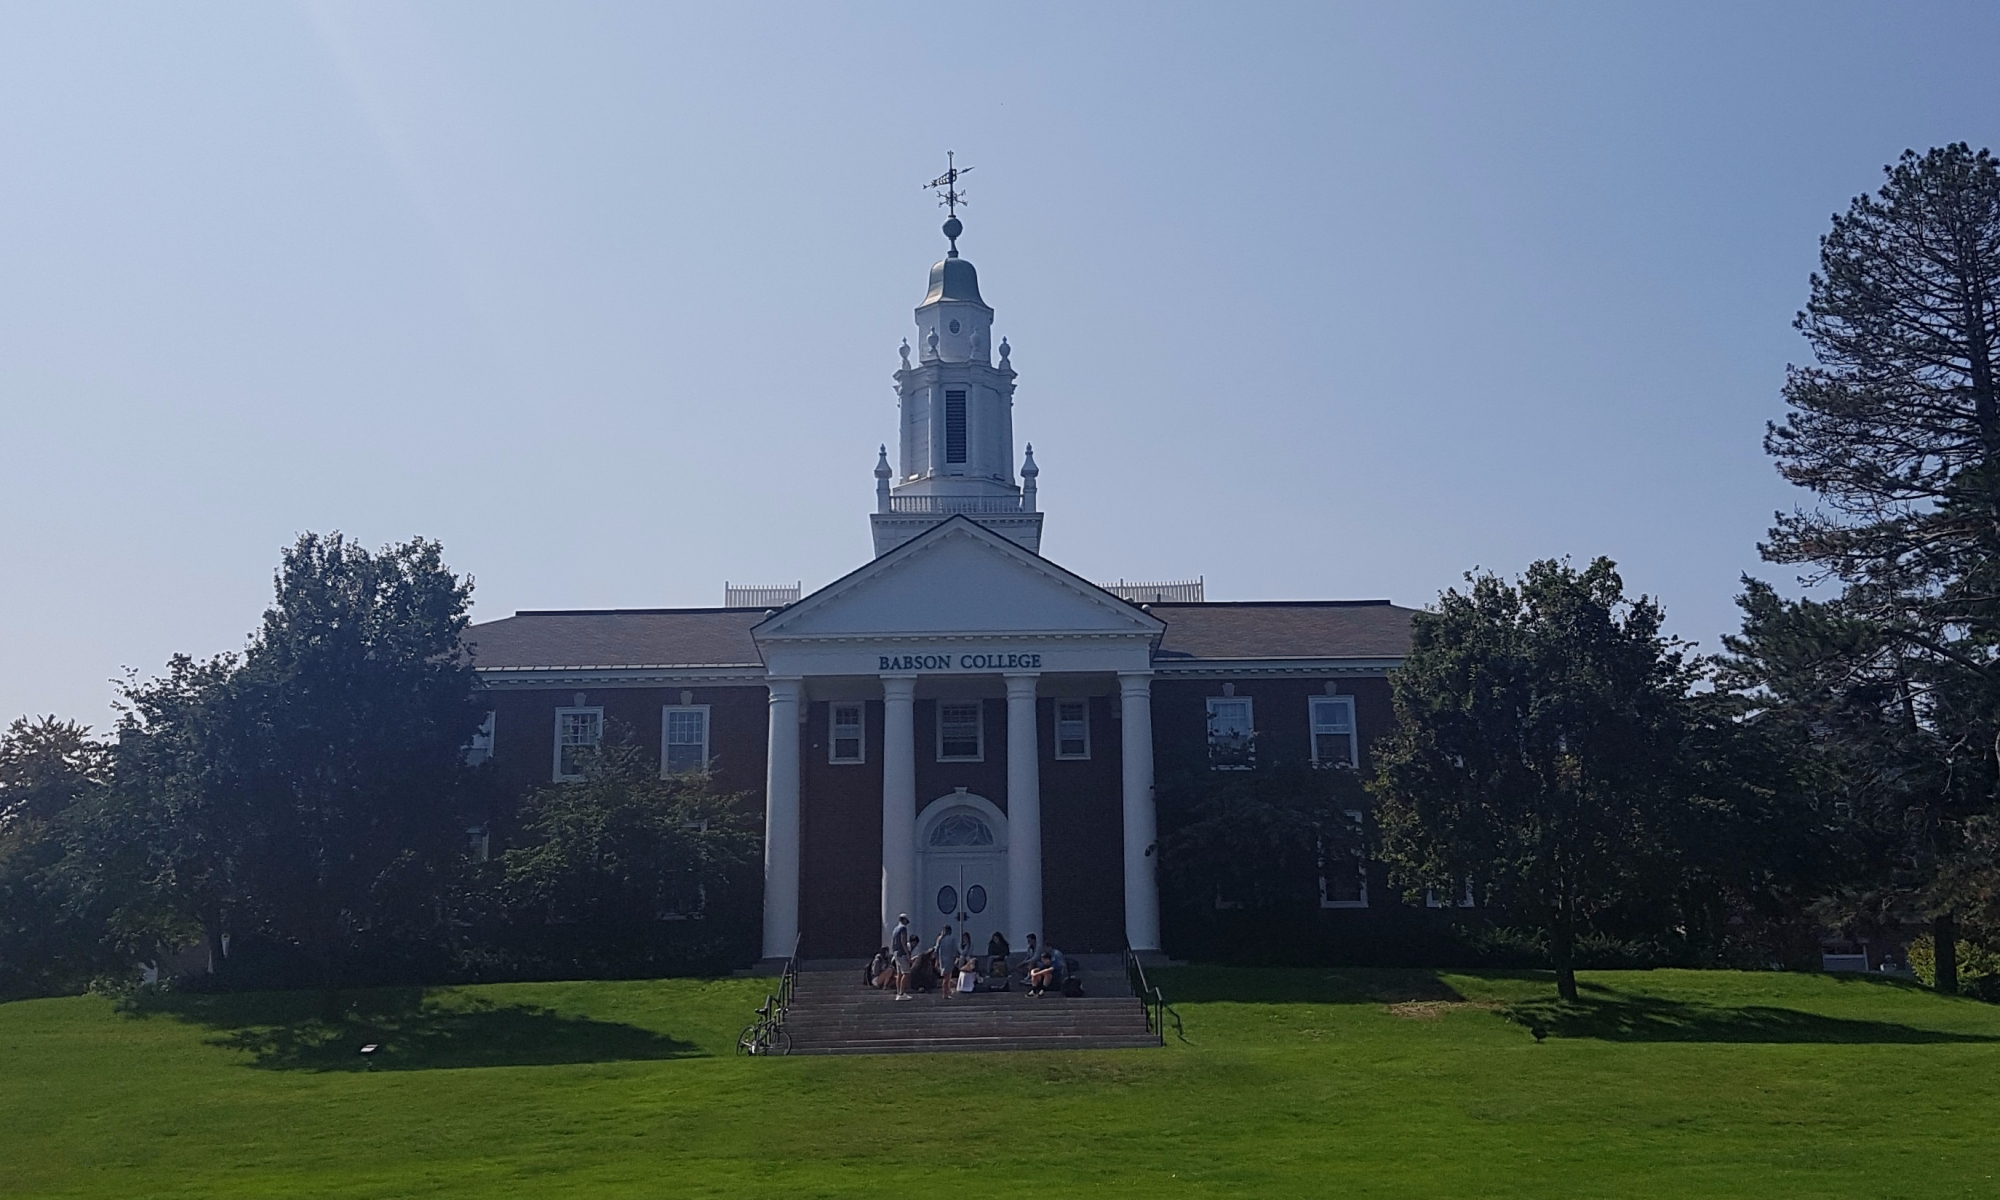 Babson college Main Hall